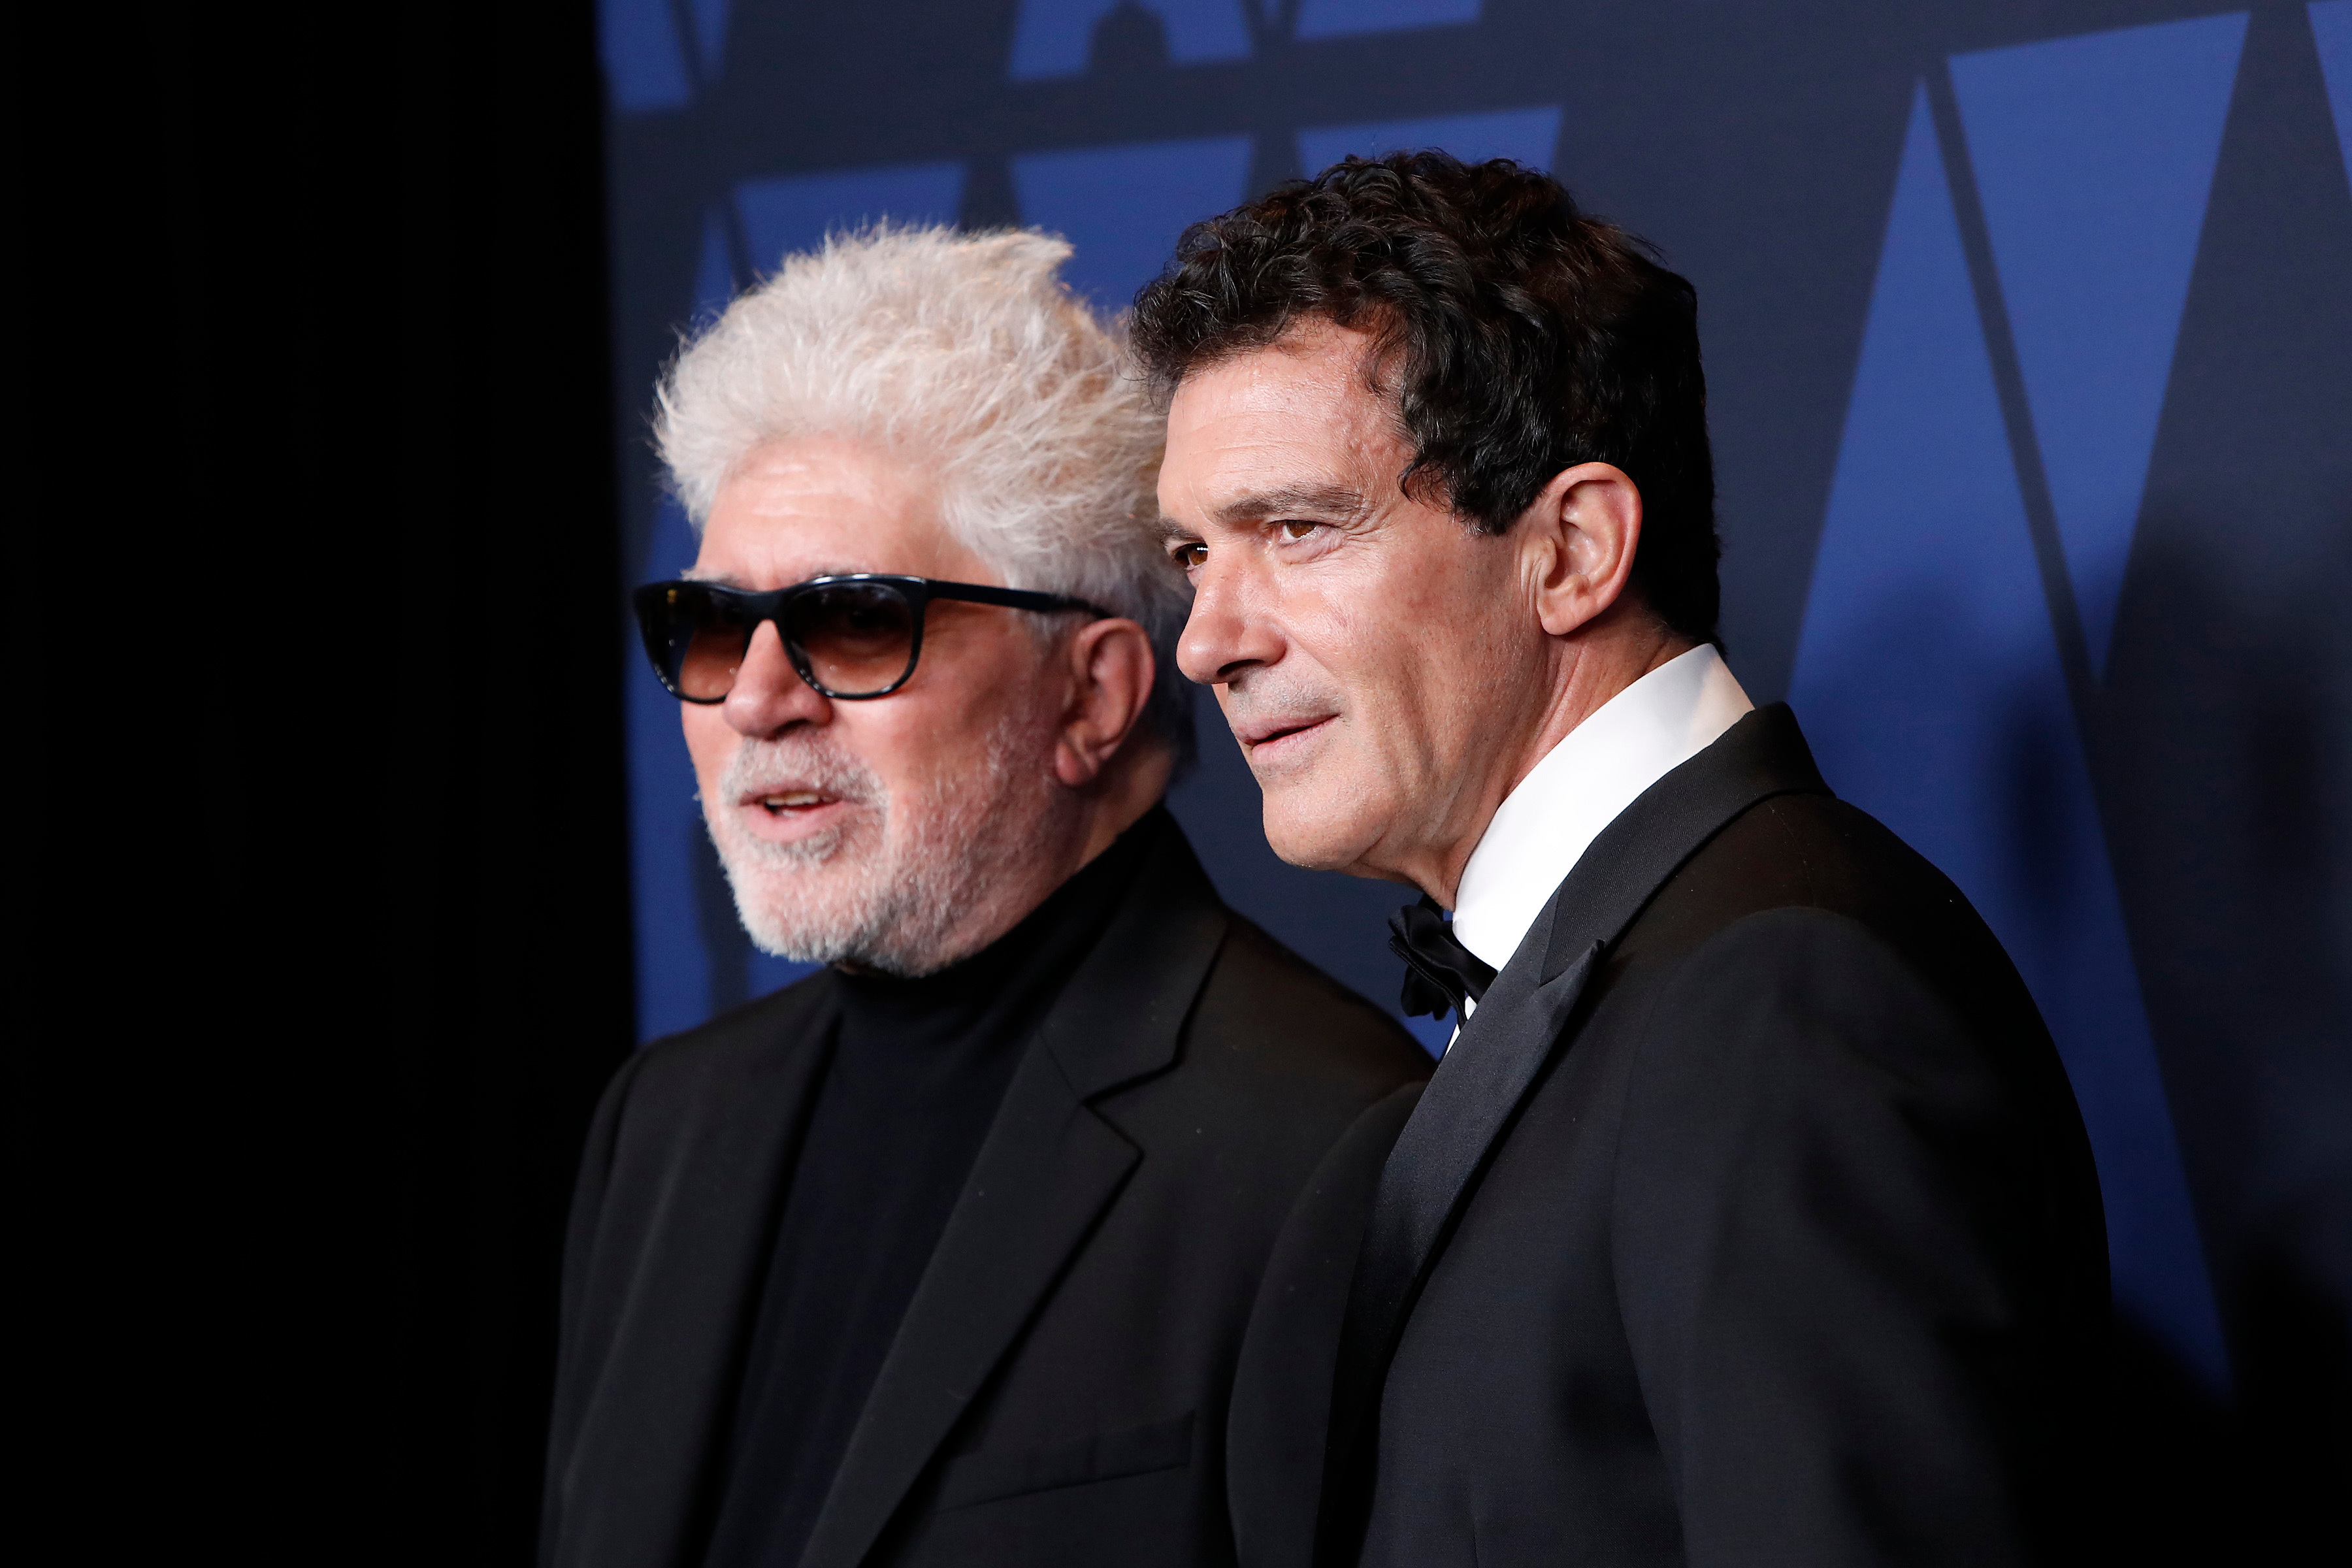 Pedro Almodovar (L) and Spanish actor Antonio Banderas (R) pose on the red carpet prior to the 11th Annual Governors Awards at the Dolby Theater in Hollywood, California, USA, 27 October 2019.11th Annual Governors Awards - Arrivals, Hollywood, USA - 27 Oct 2019